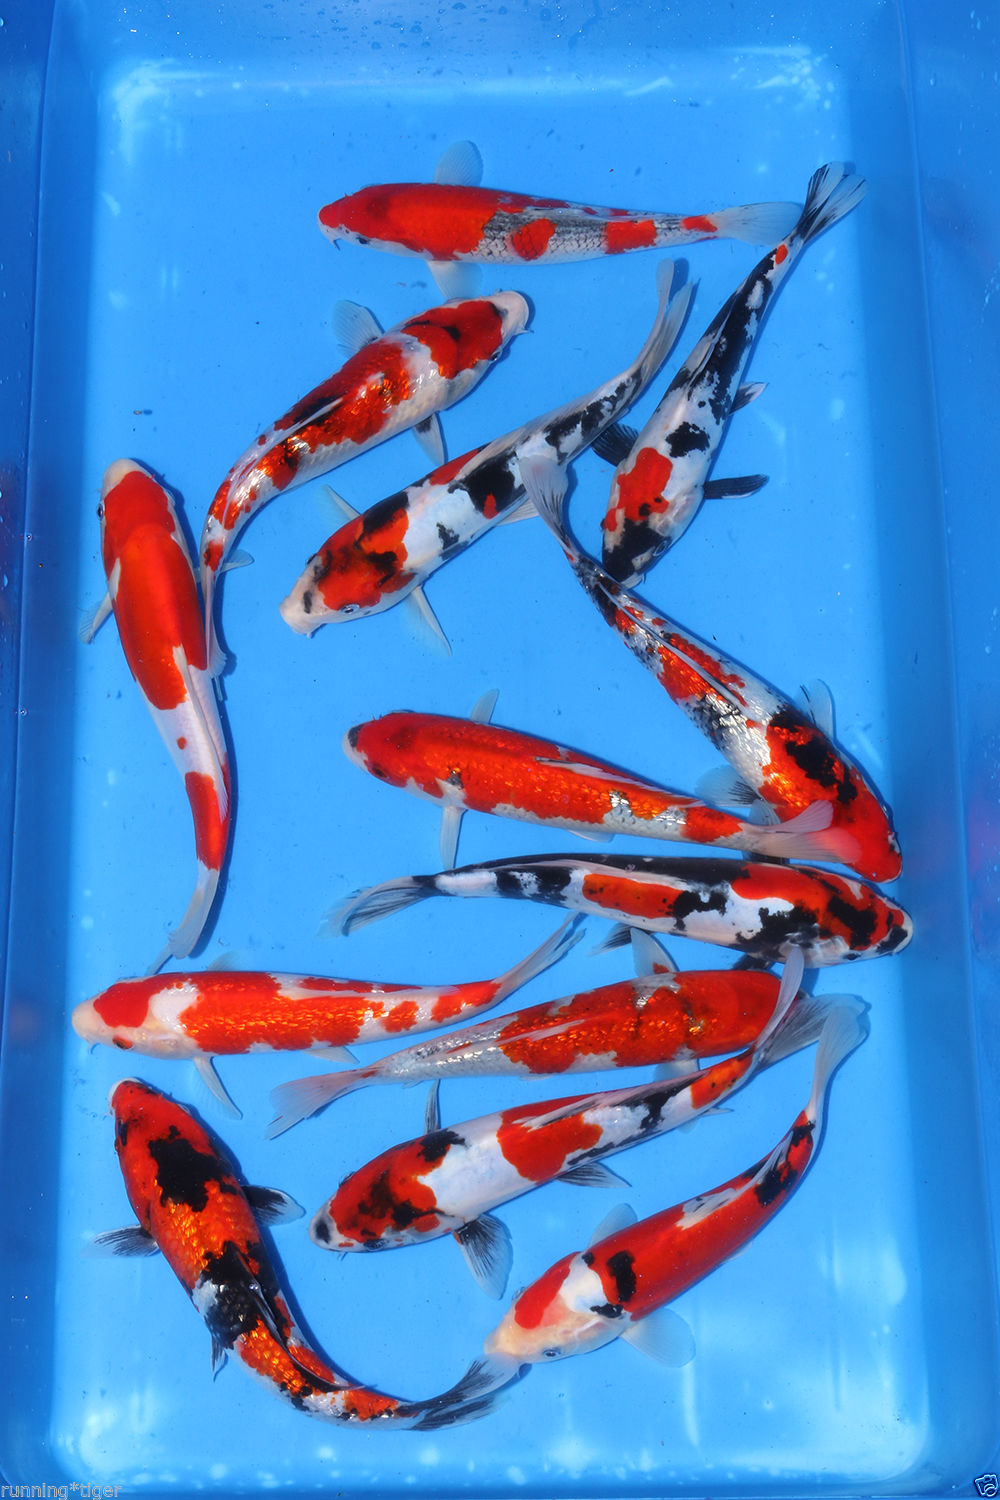 Japanese koi 393 tosai koi pond fish for sale bjs for Expensive koi fish for sale